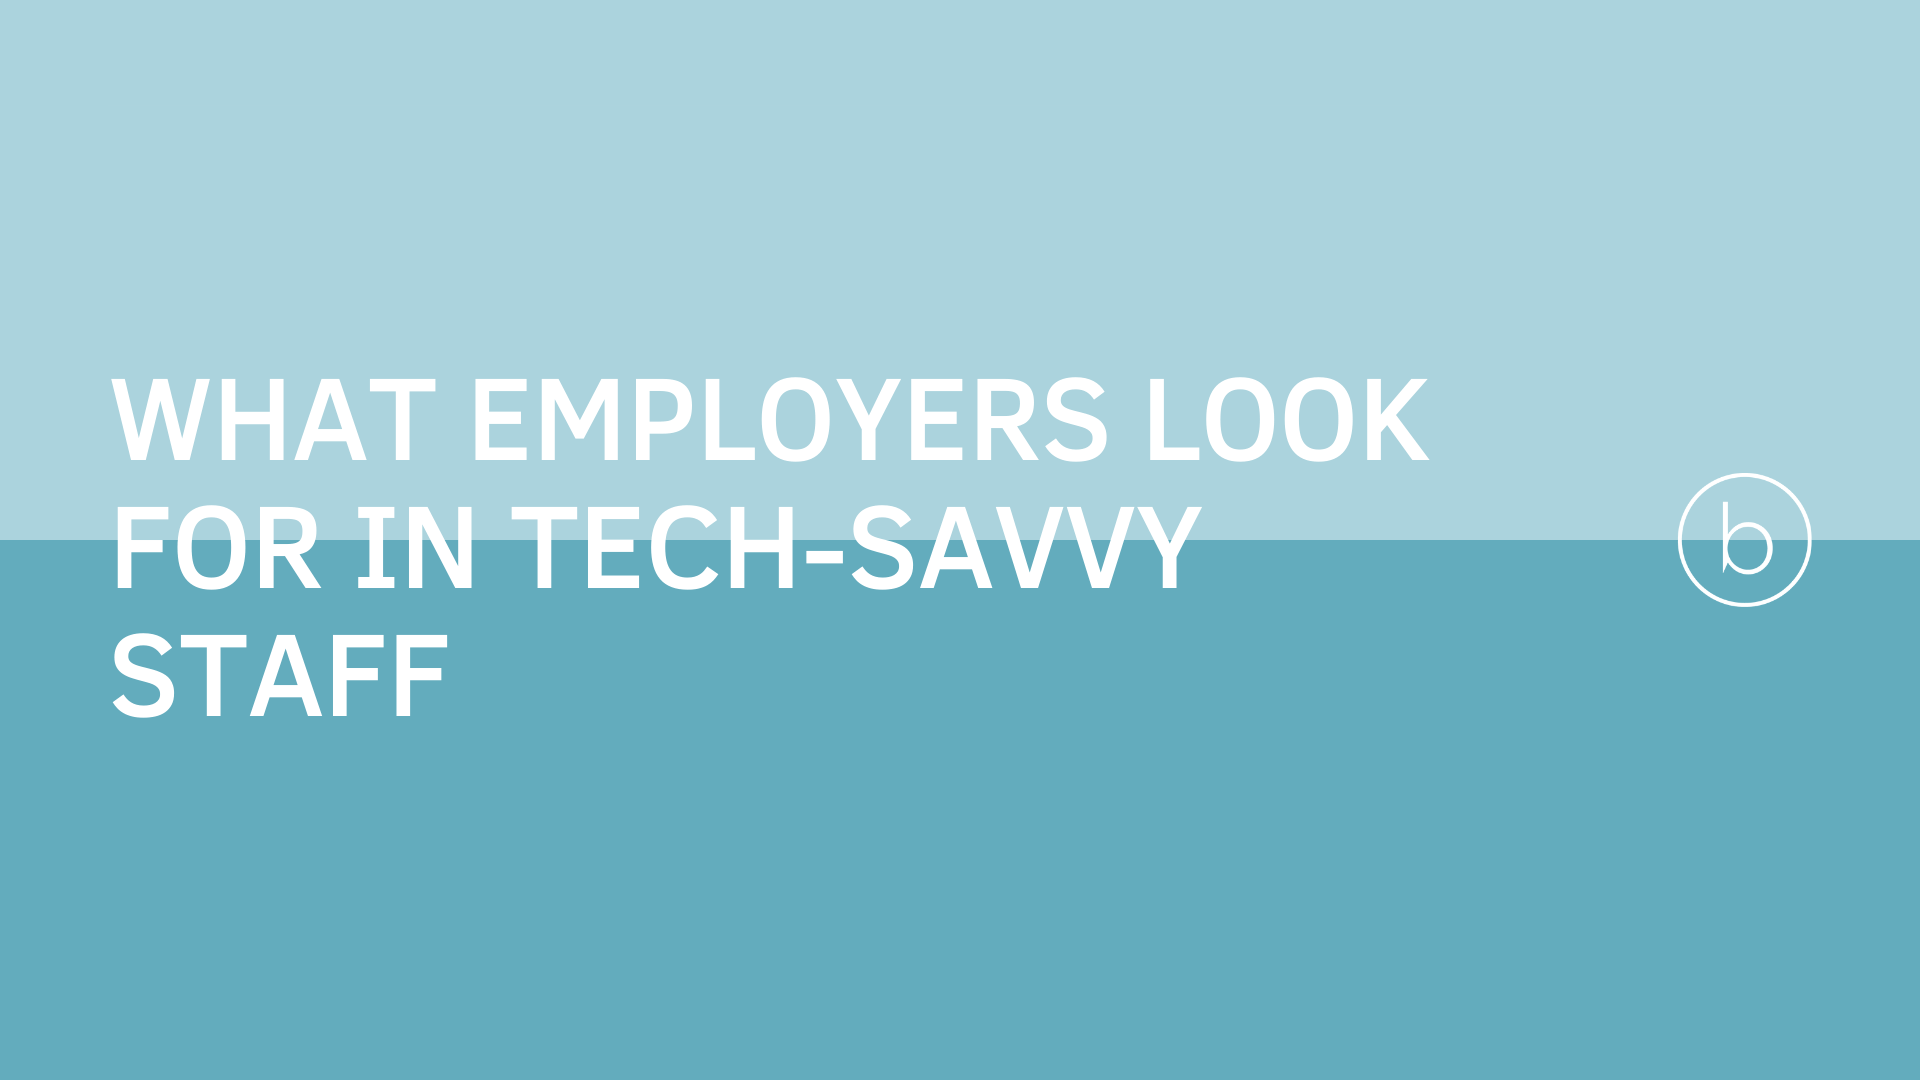 What employers look for in tech-SAVVY STAFF